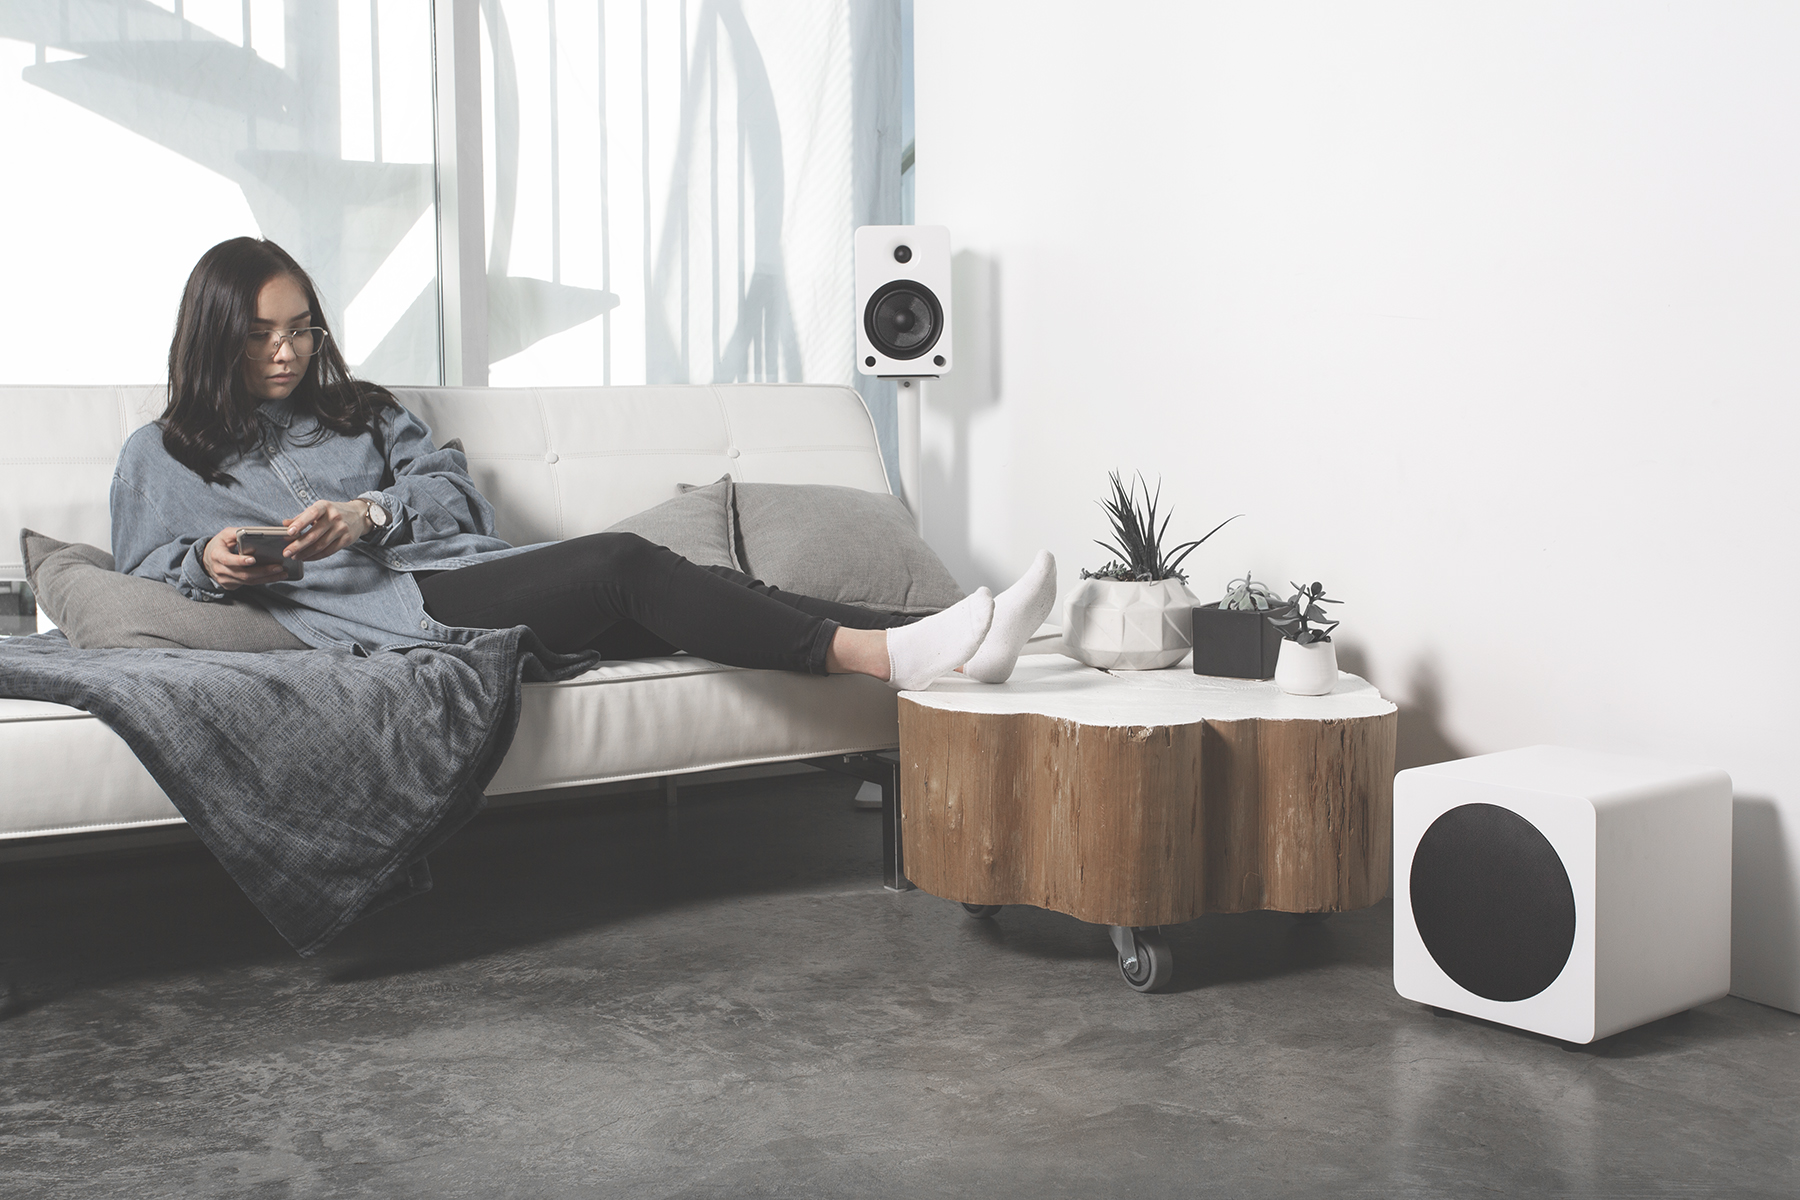 Woman listening to music while sitting on a couch with white YU4 and sub8 Kanto speakers